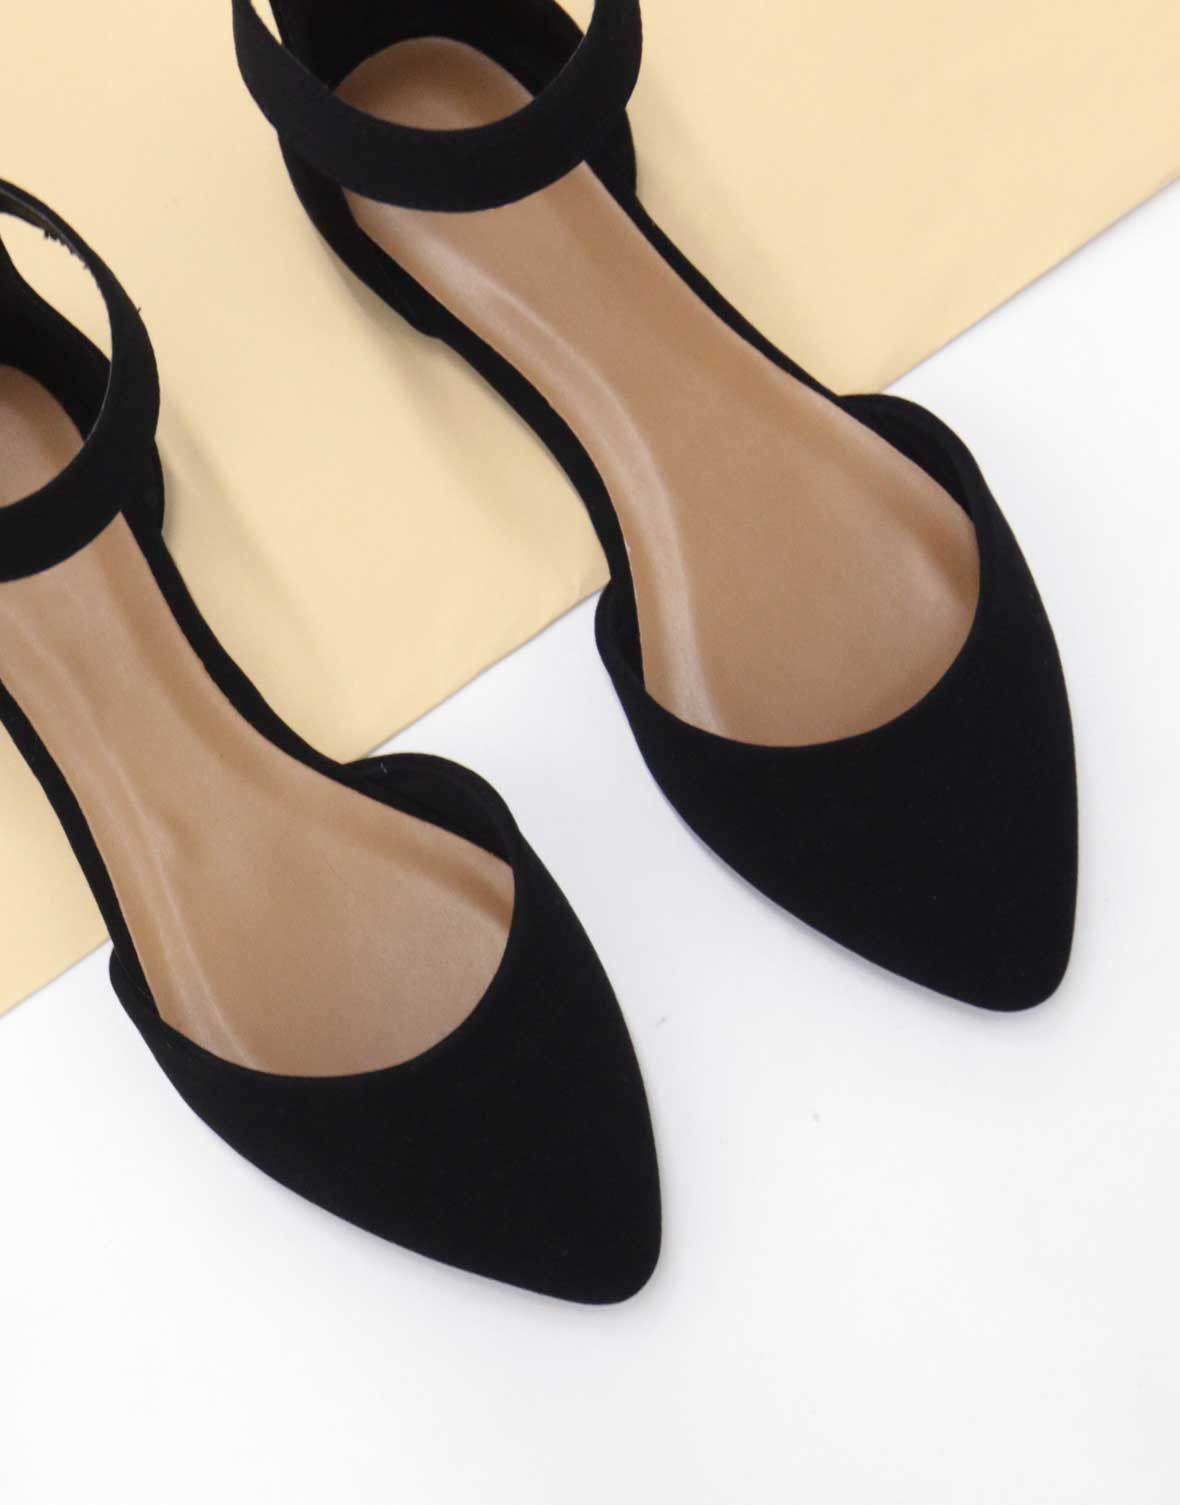 2db181a18c61 Date  05 15 17 Take on this new form of ballerina flats. These Ankle  Strapped Flats come in a natural or black color of your choice.